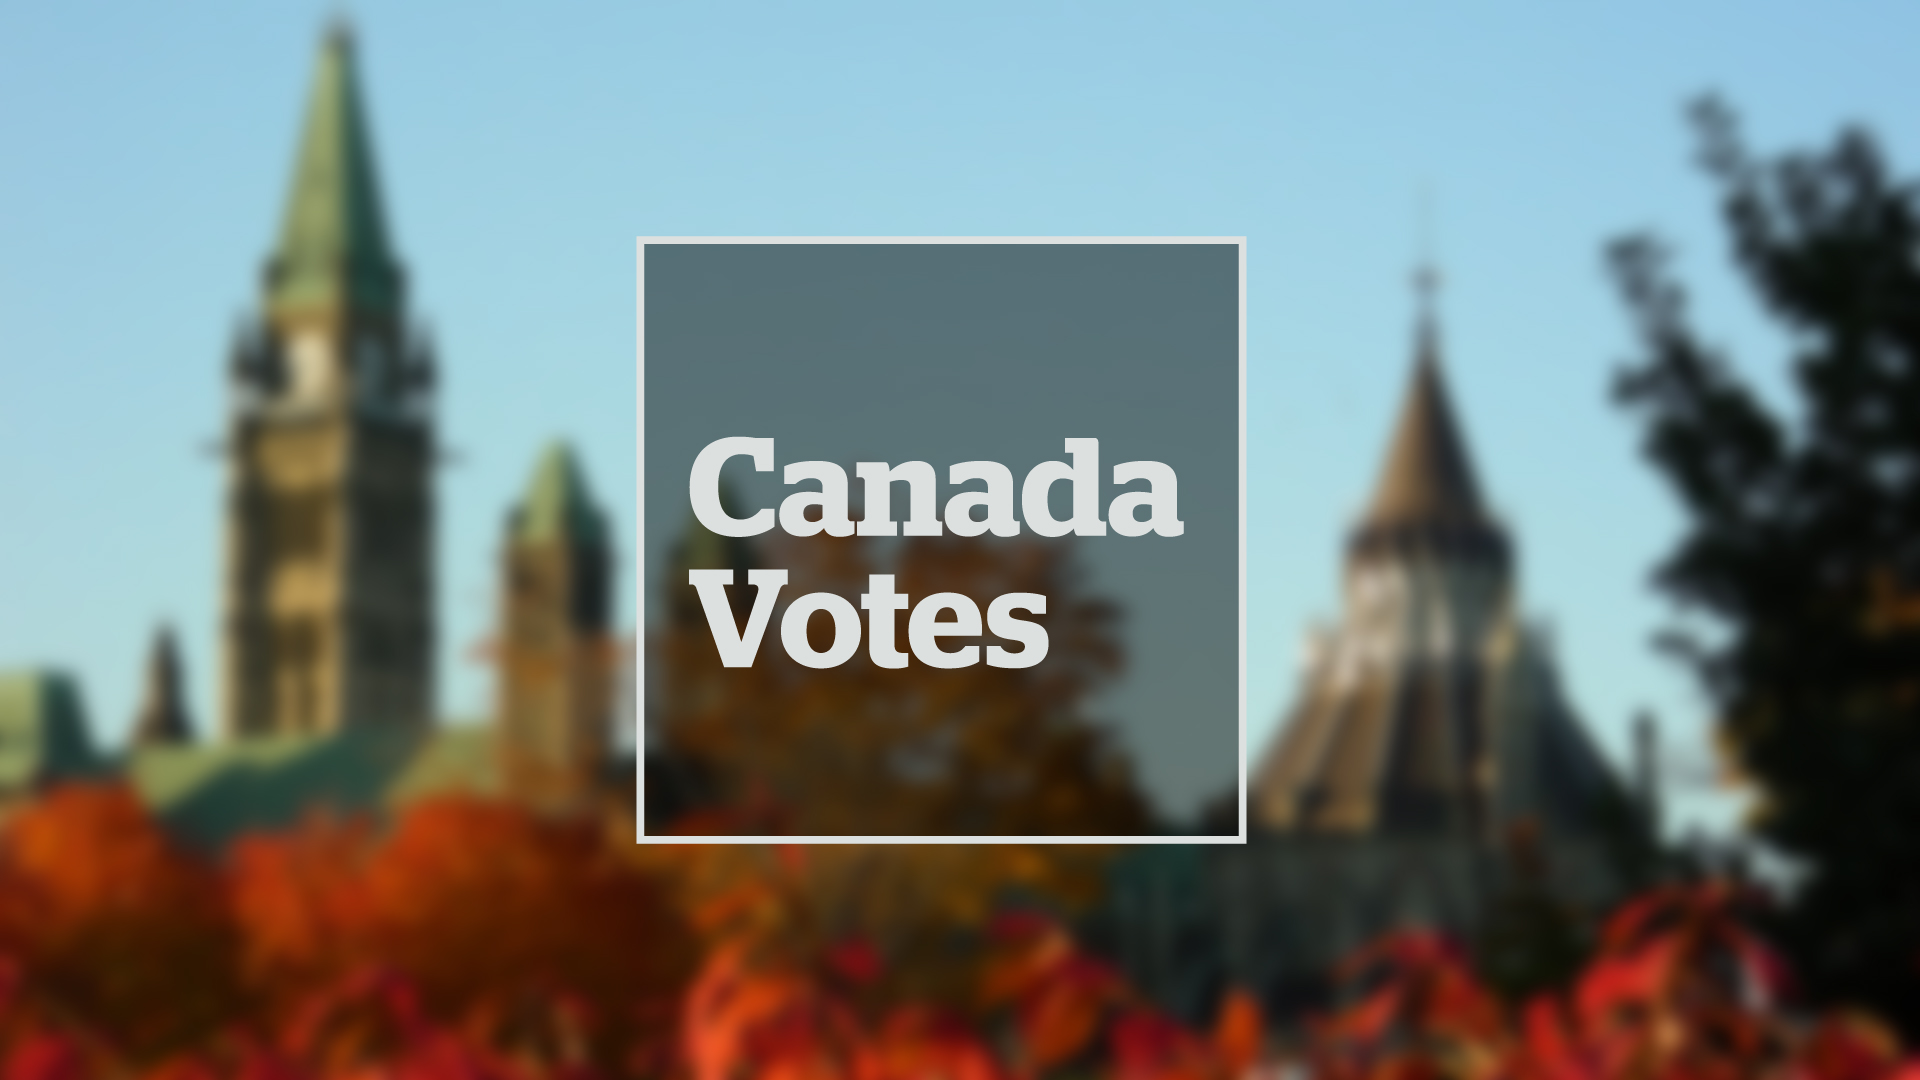 the reasons that canadian voters arent voting Voting is habitual, which means as youth continue to not vote, get older and eventually replace older voting generations, there is a very real potential we go from a short-term crisis in representation to a long-term crisis in our democracy.